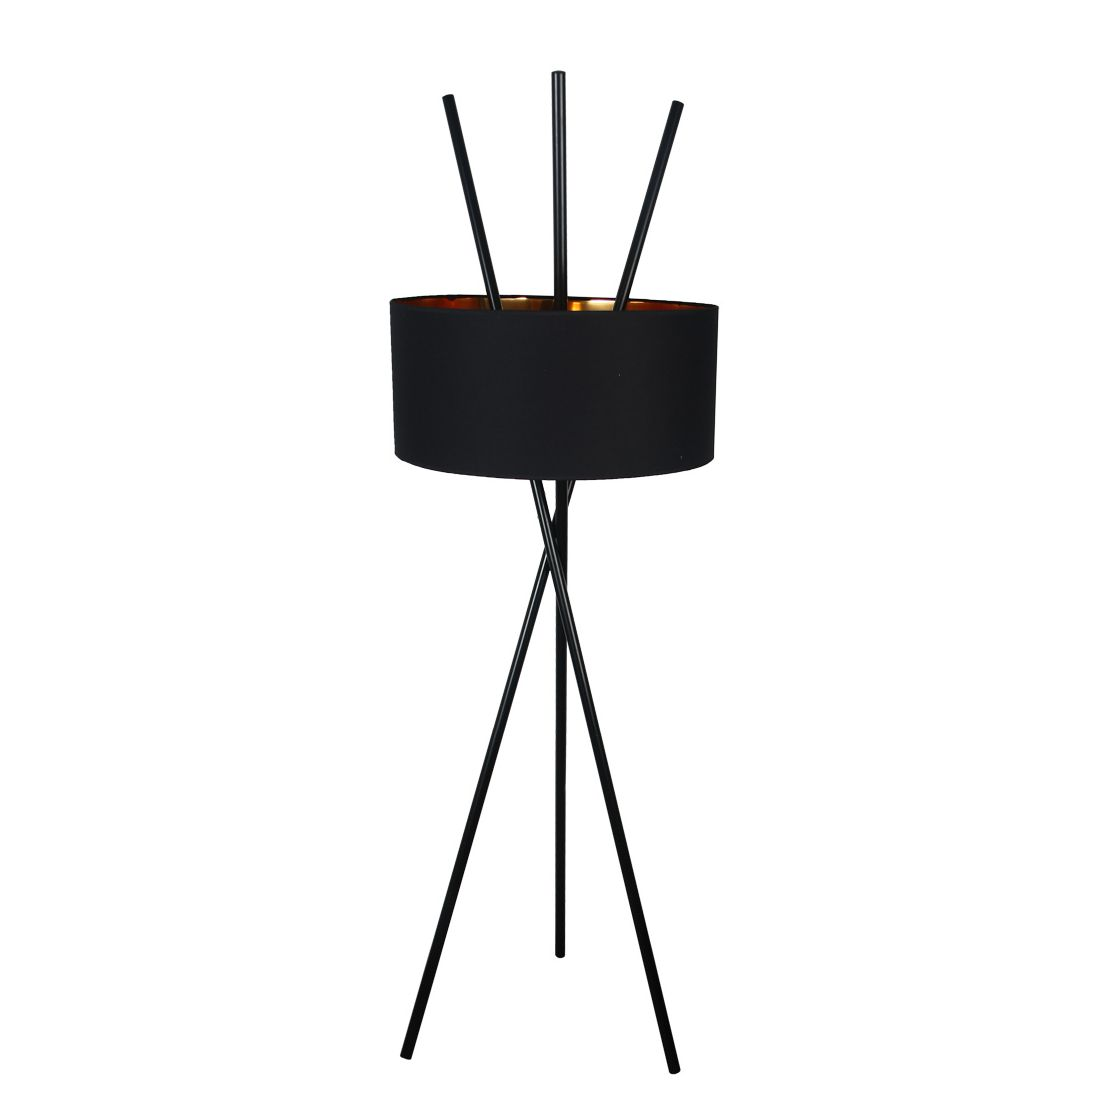 Stehlampe clipart  Stehleuchte Tripod Aton - Webstoff / Metall - Fashion For Home